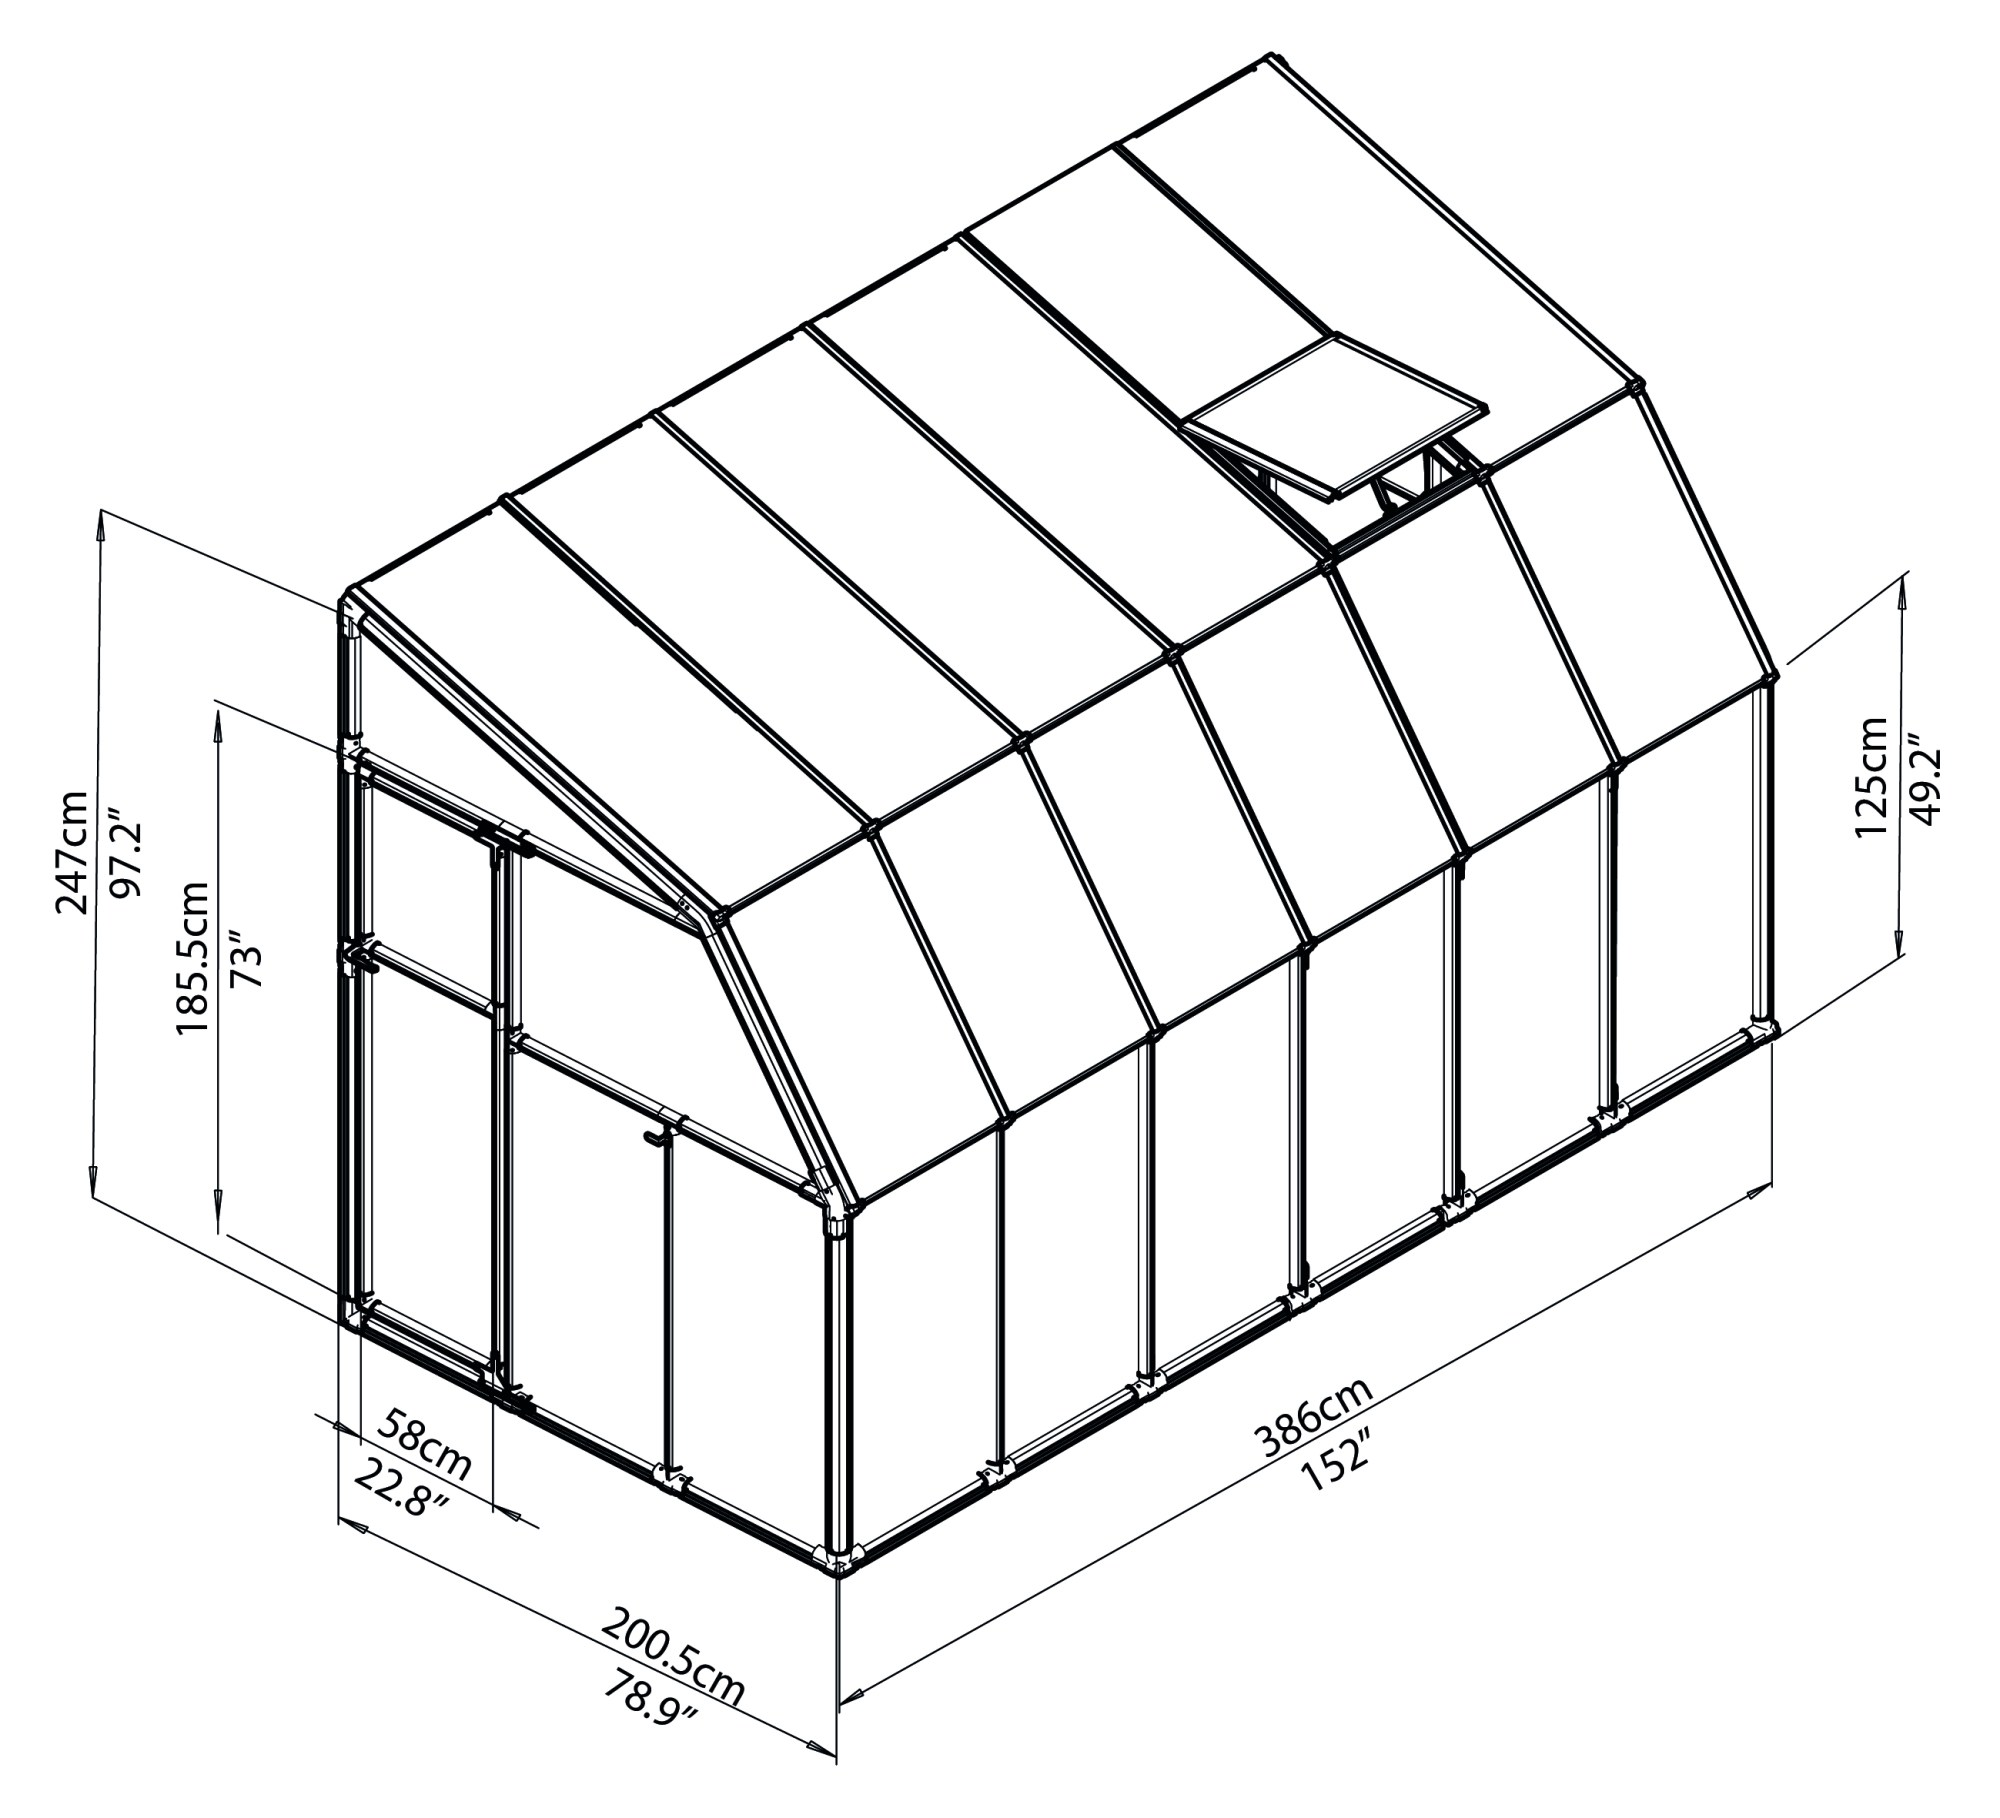 hight resolution of  rion greenhouses sunroom sunlounge 6x12 drawing isoview jpg